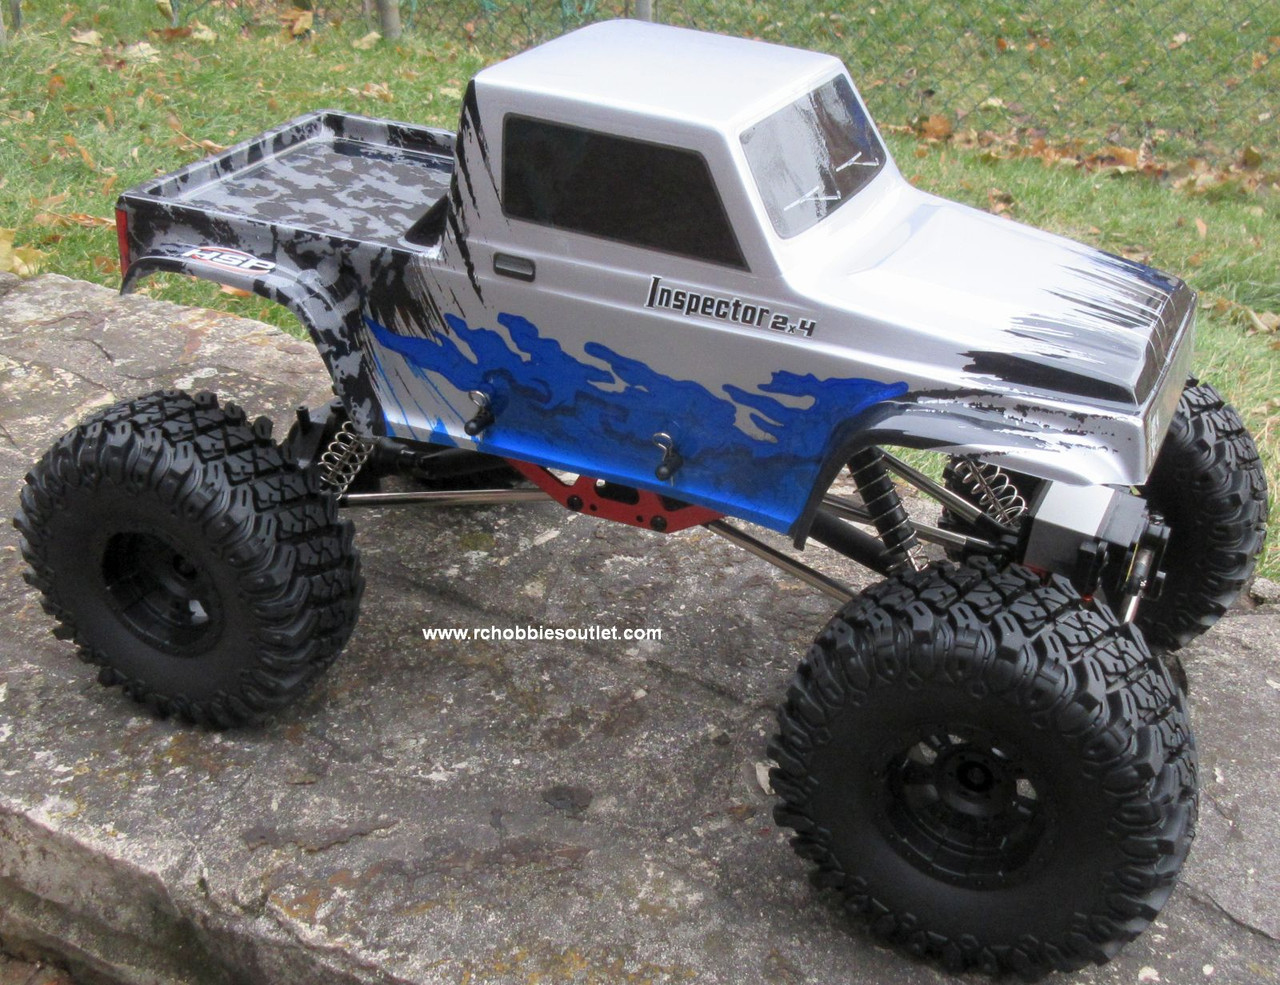 RC Rock Crawler Truck Inspector Electric 1/10 Scale RTR 2.4G 4WD 11091